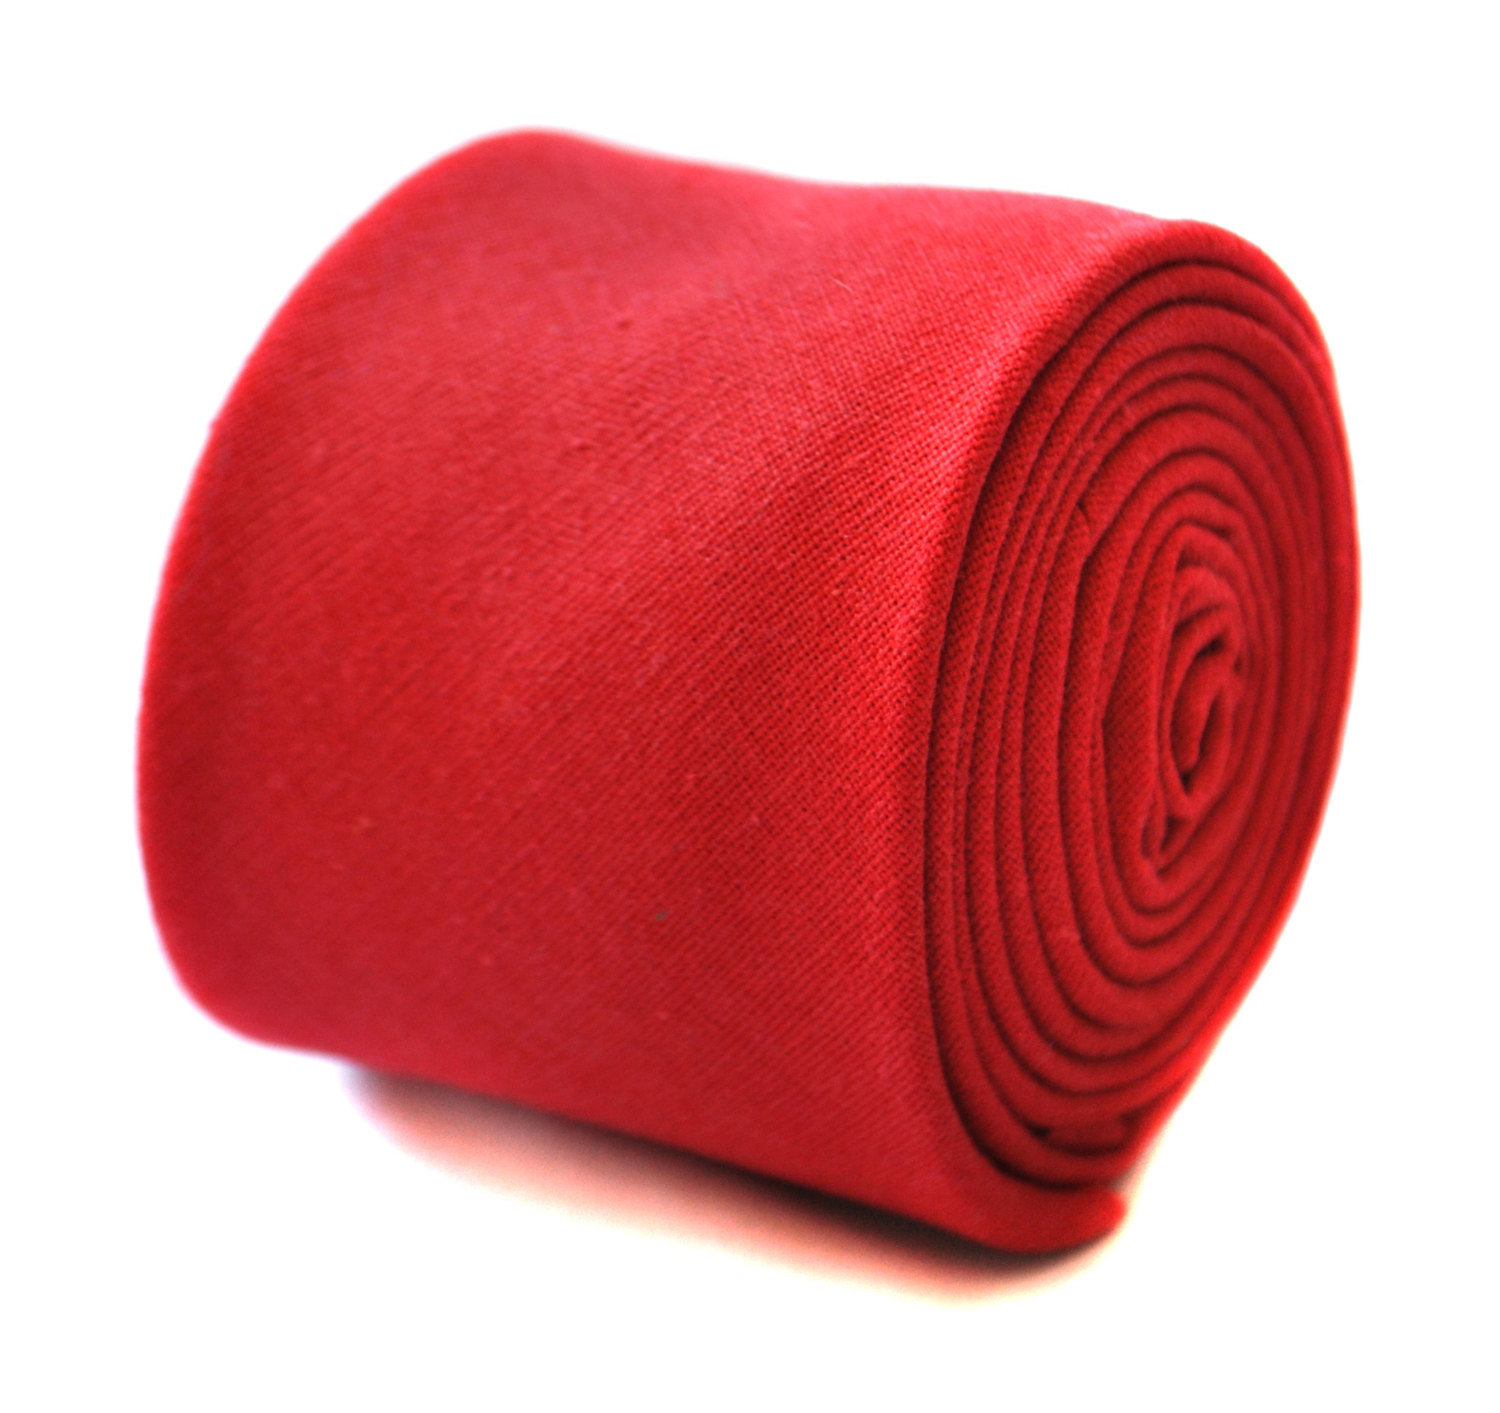 skinny plain red linen tie by Frederick Thomas FT1907